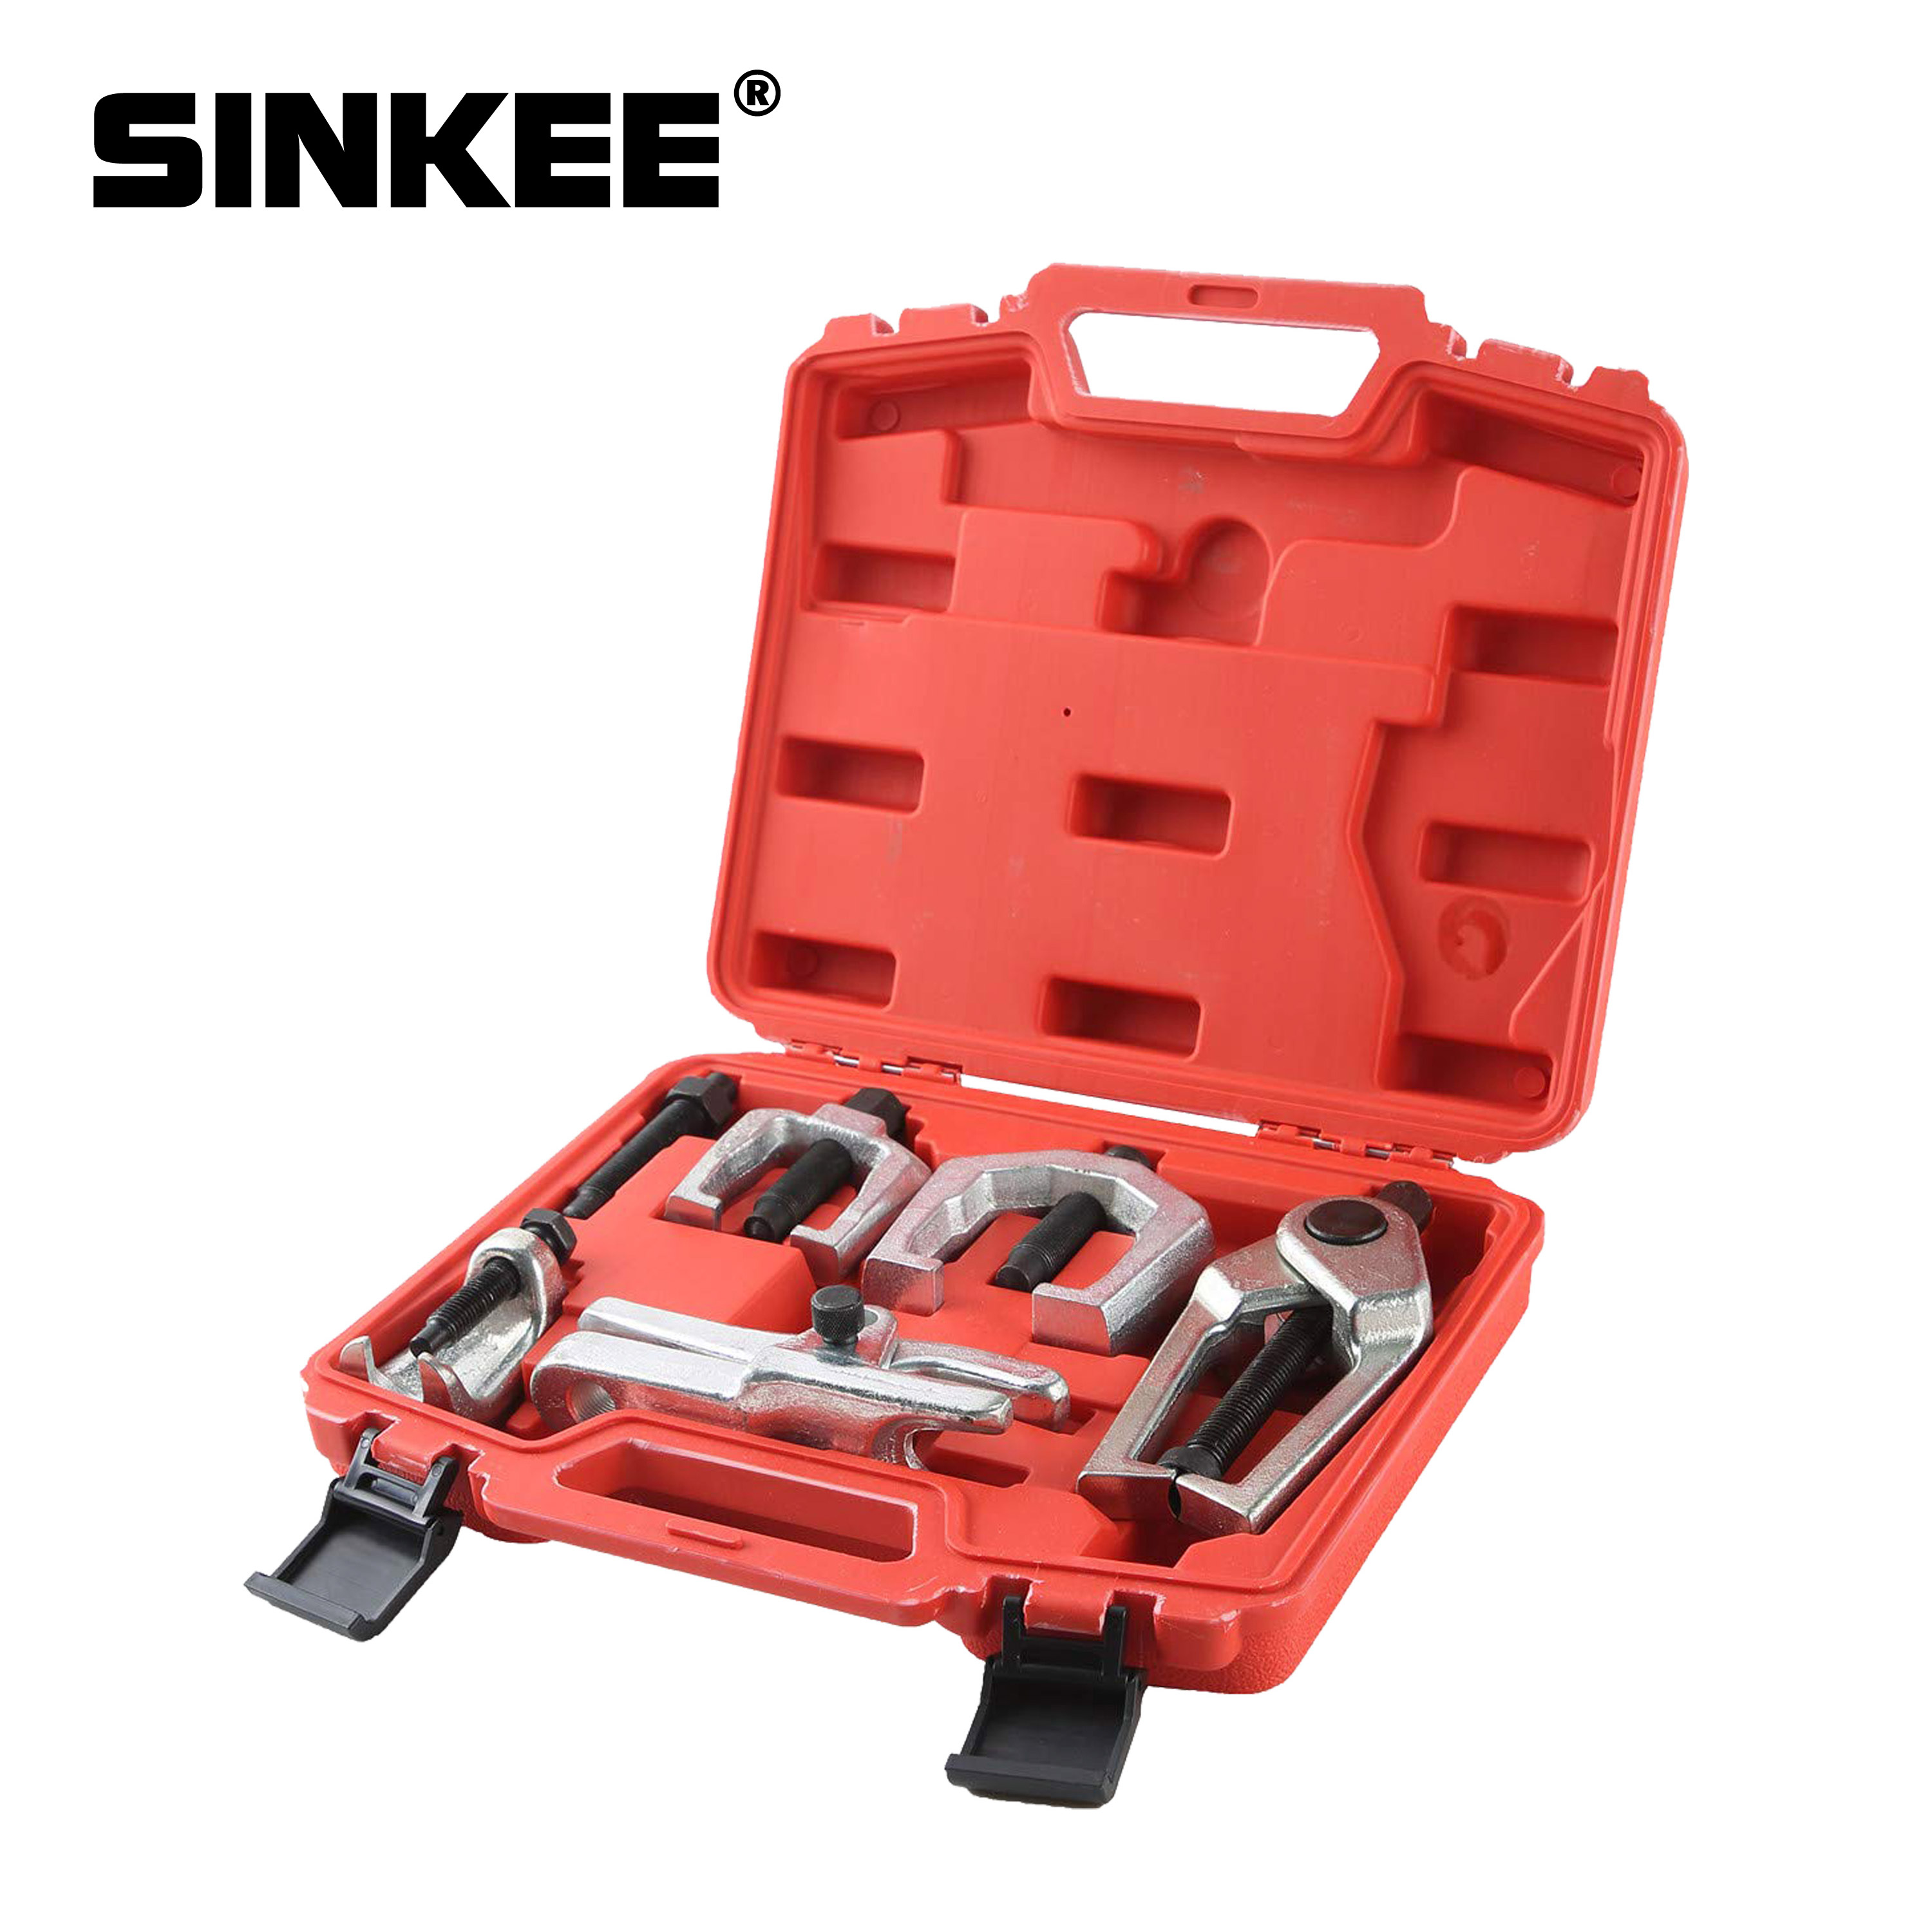 5pcs Front End Suspencion Service Ball Joint Separator Tie Rod End Kit Pitman Arm Puller Auto Tool Set Remover SK1540